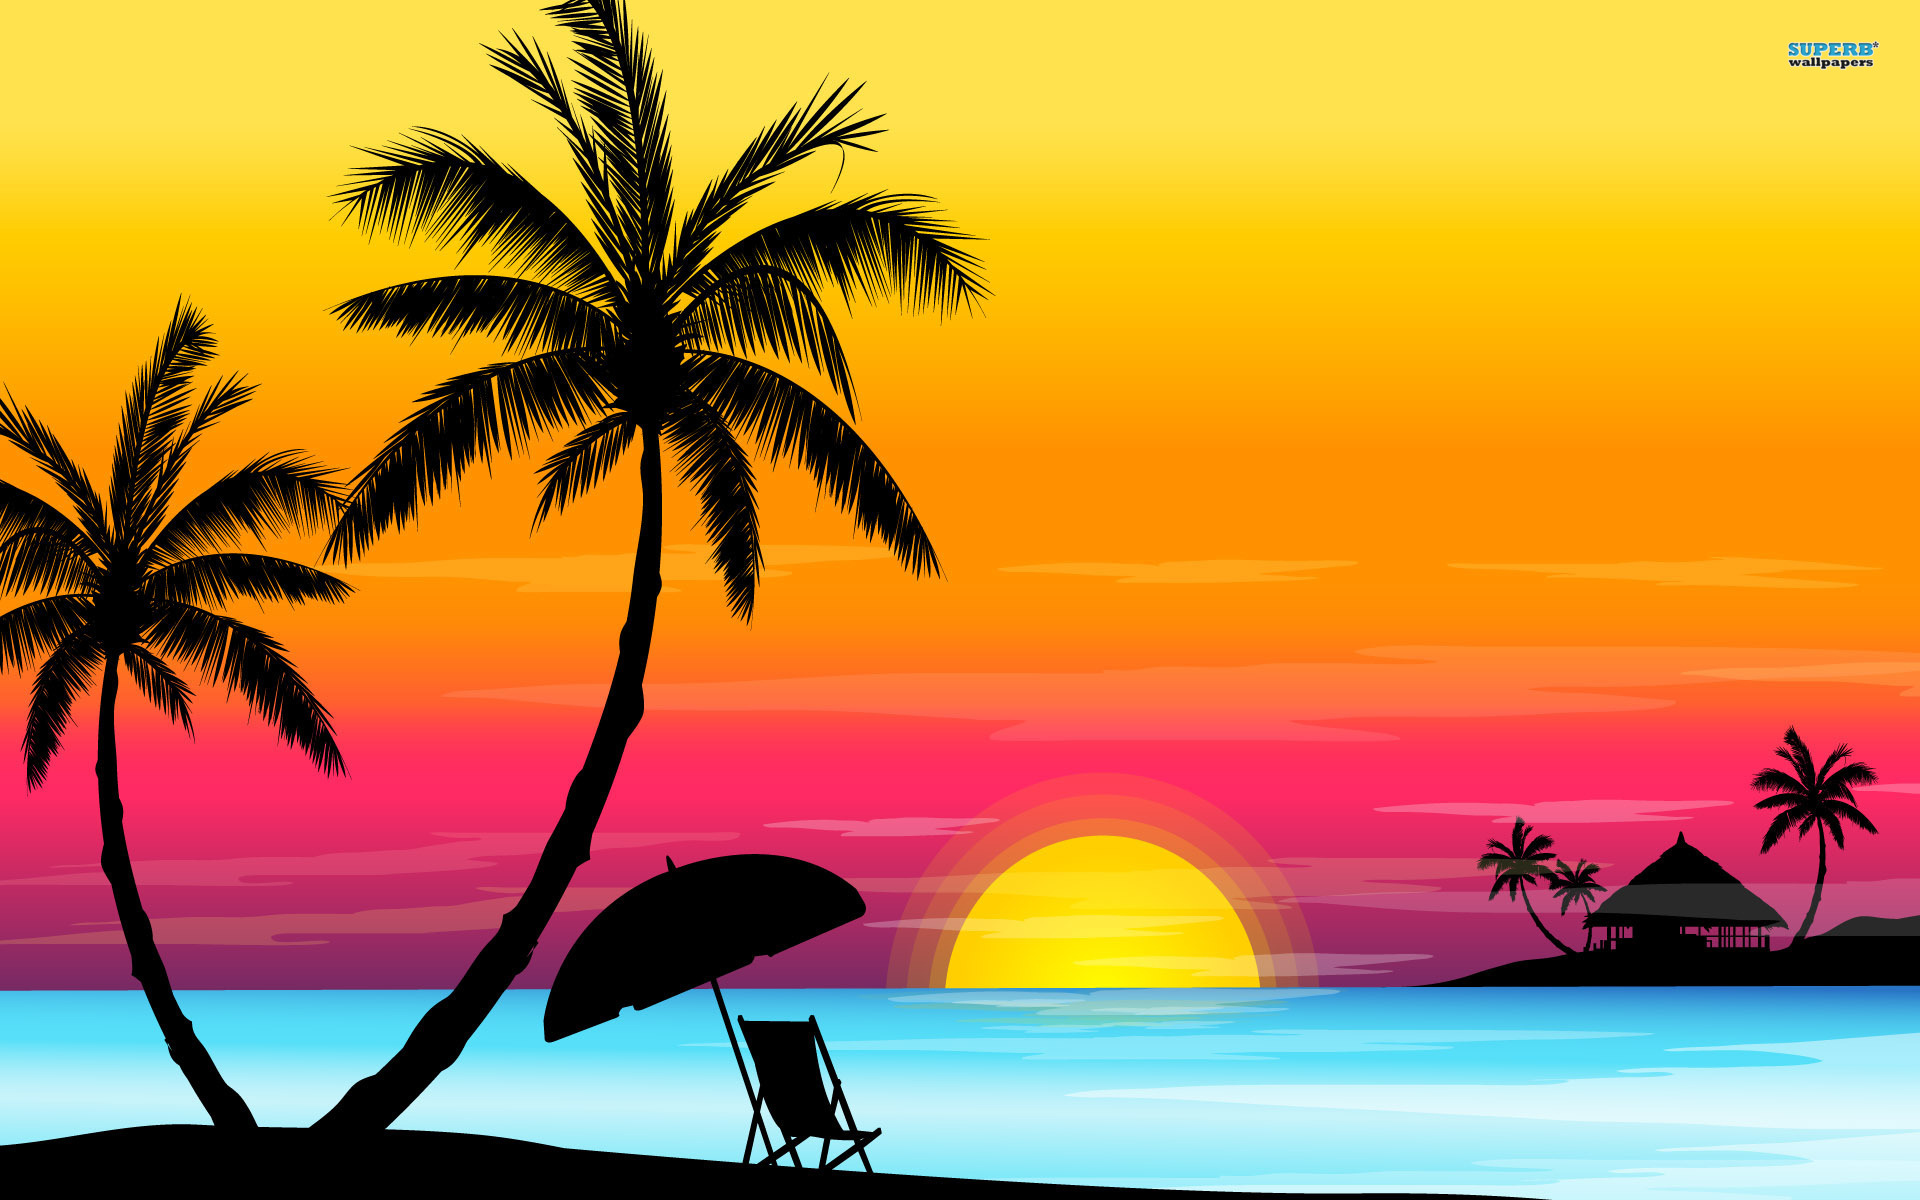 Palm tree sunset clipart 400 pixel by 150 pxl vector black and white Palm tree sunset clipart 400 pixel by 150 pxl - ClipartFest vector black and white